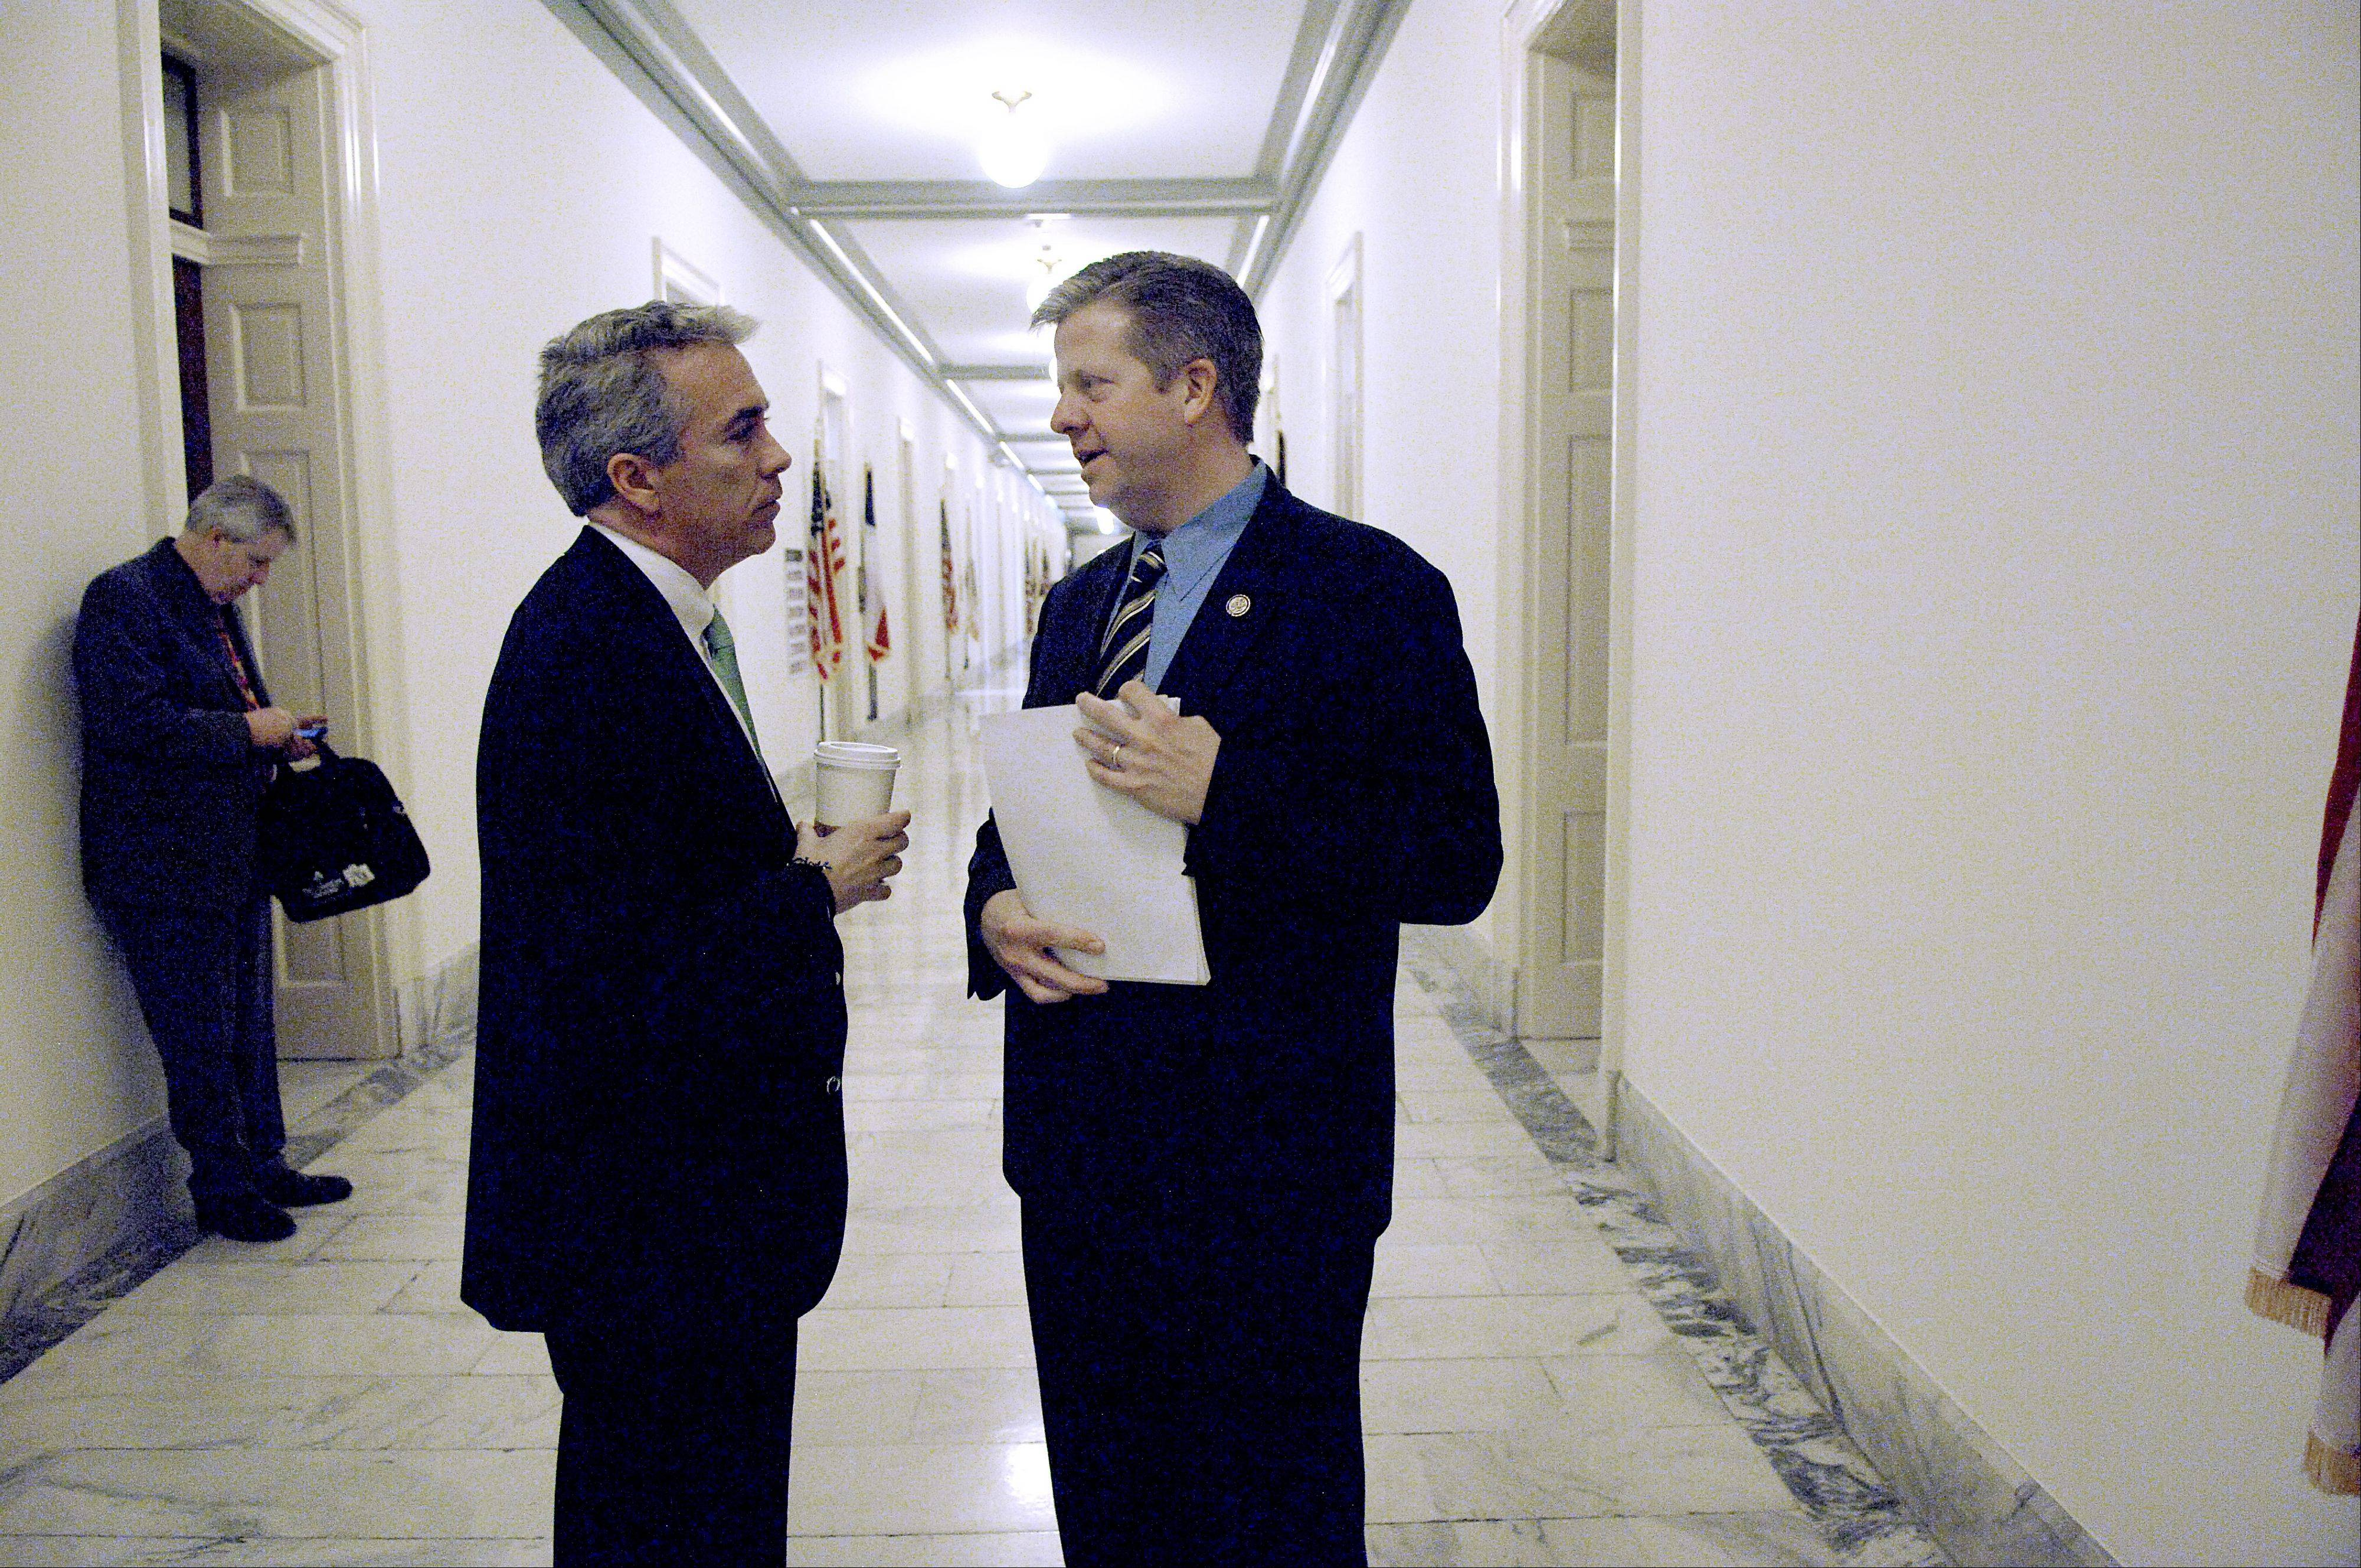 Illinois Congressman Joe Walsh, left, has a hallway chat with 14th District Congressman Randy Hultgren in Washington D.C. The two Republicans could find themselves in a primary matchup in the newly drawn 14th District.